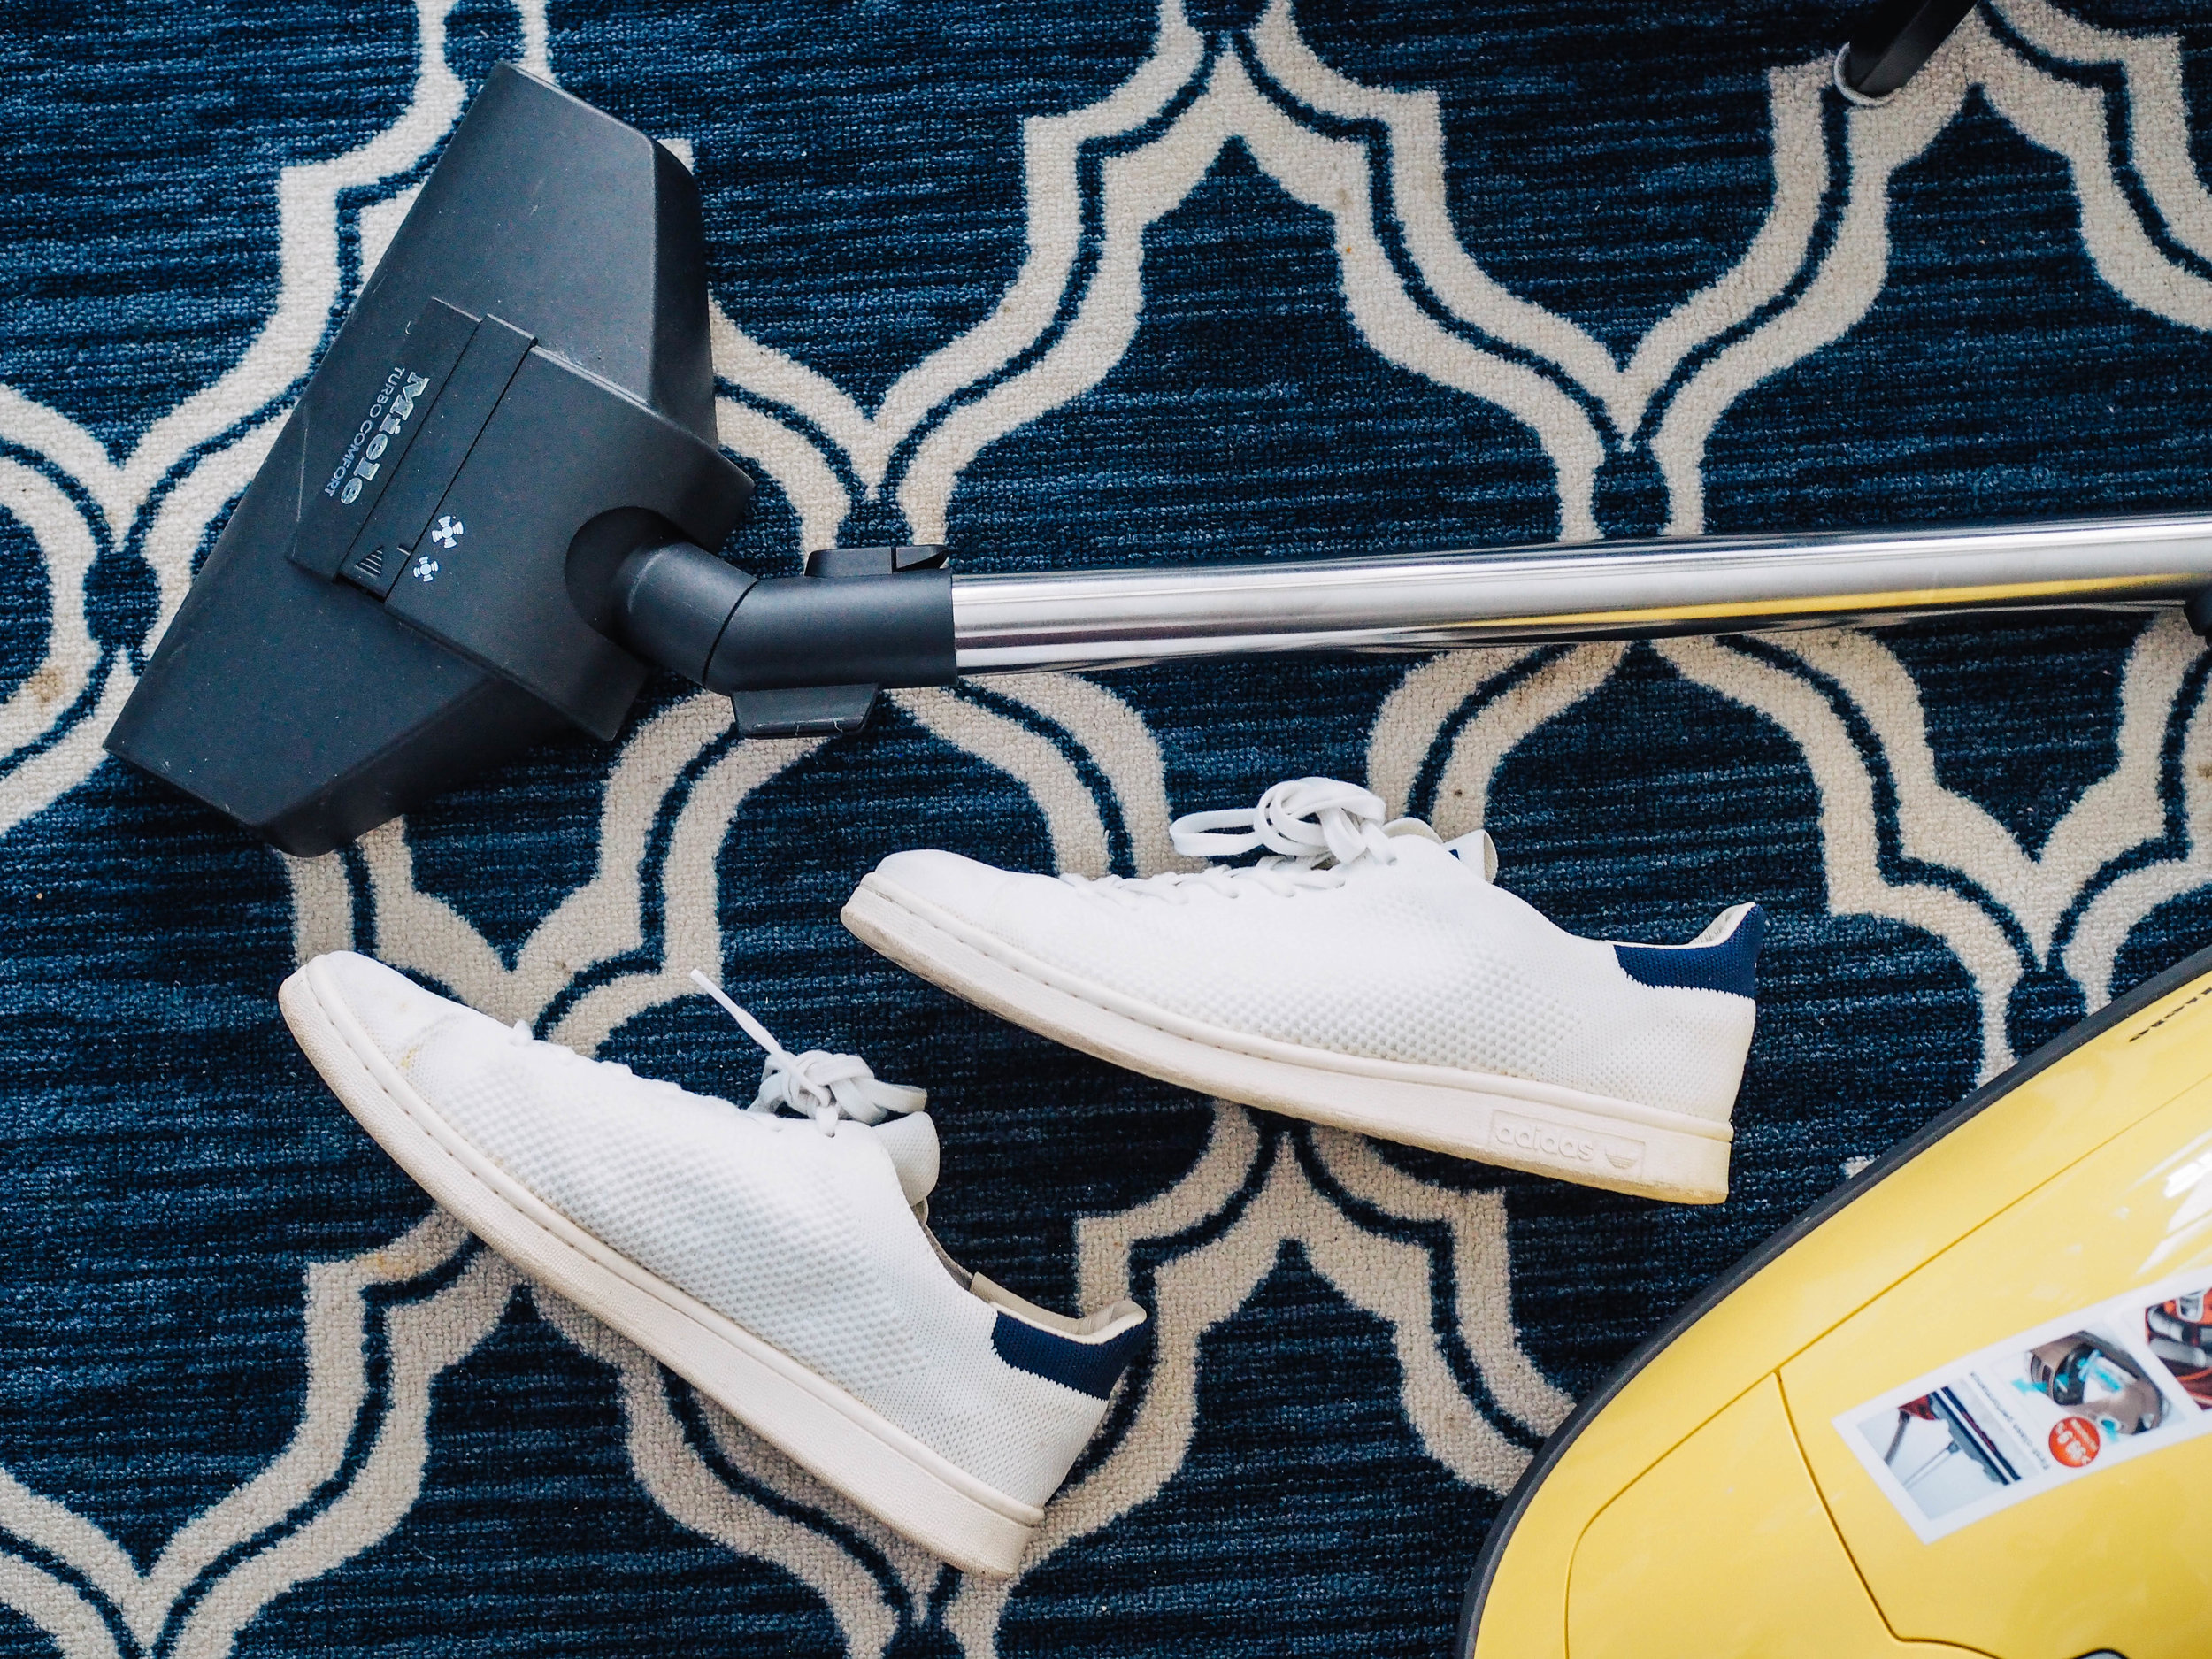 rugs with shoes and vacuum